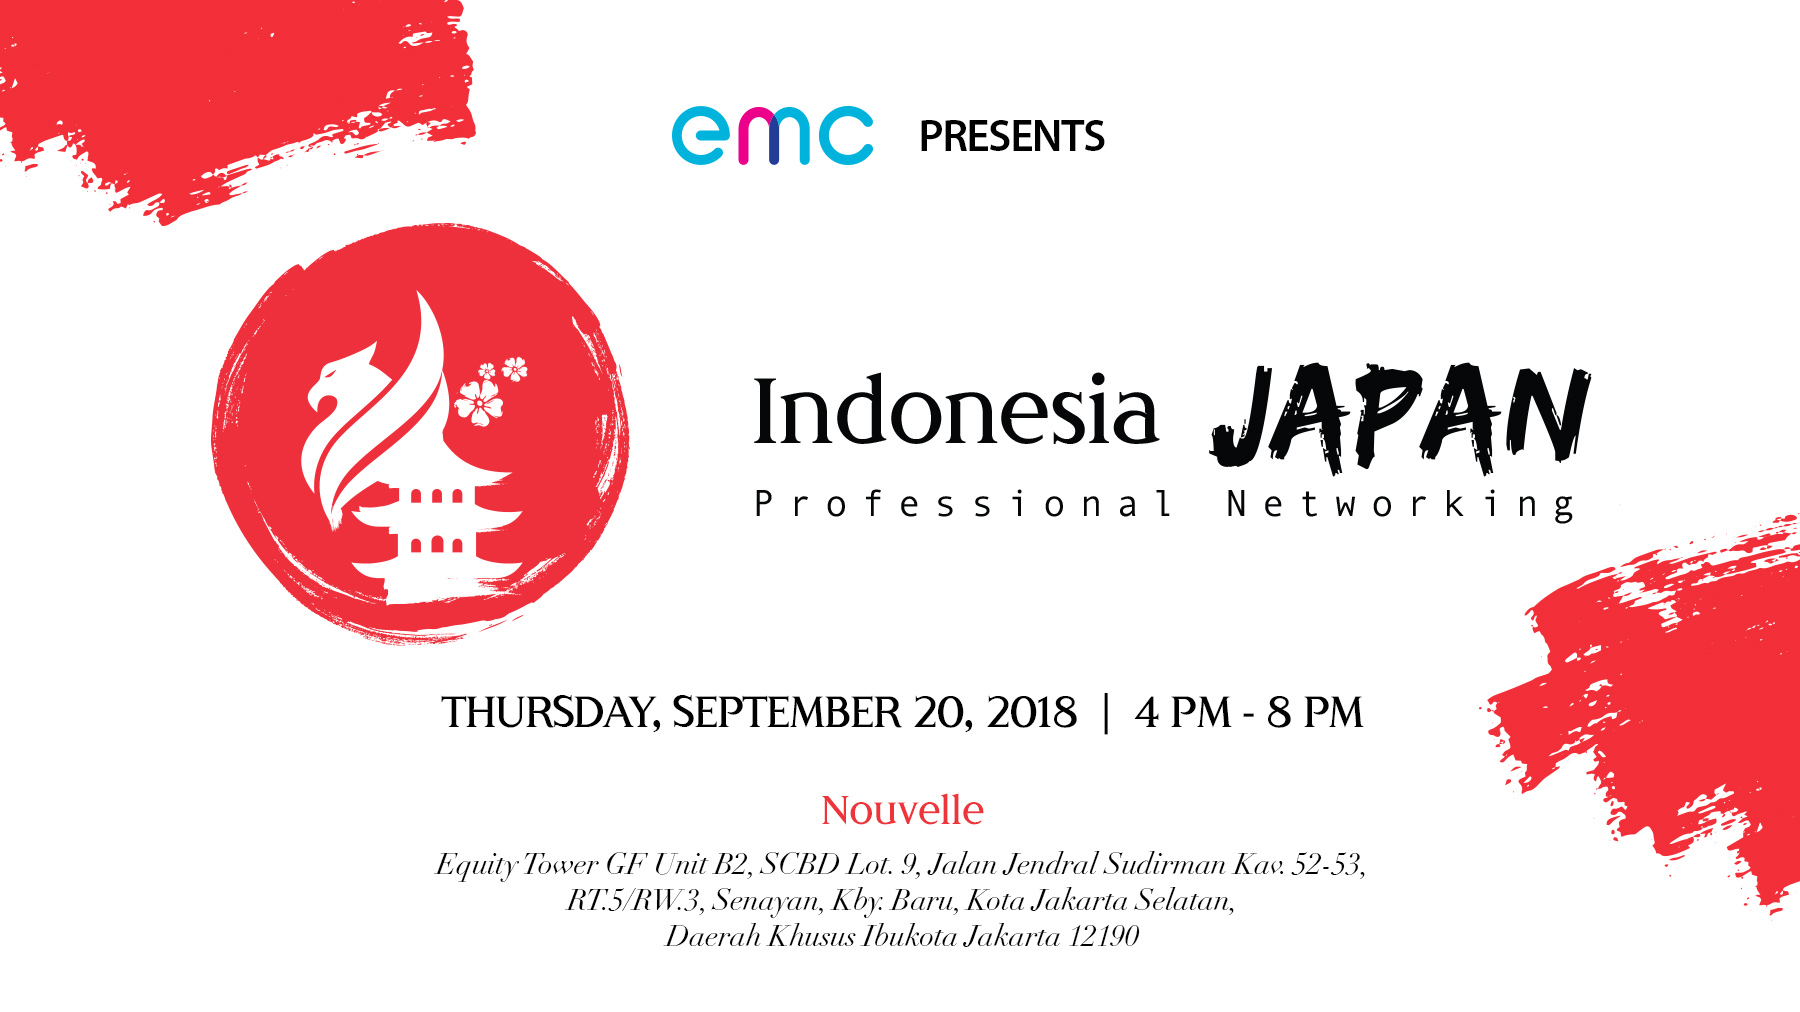 Indonesia Japan Professional Networking - Nouvelle Restaurant, 20 Sept 2018